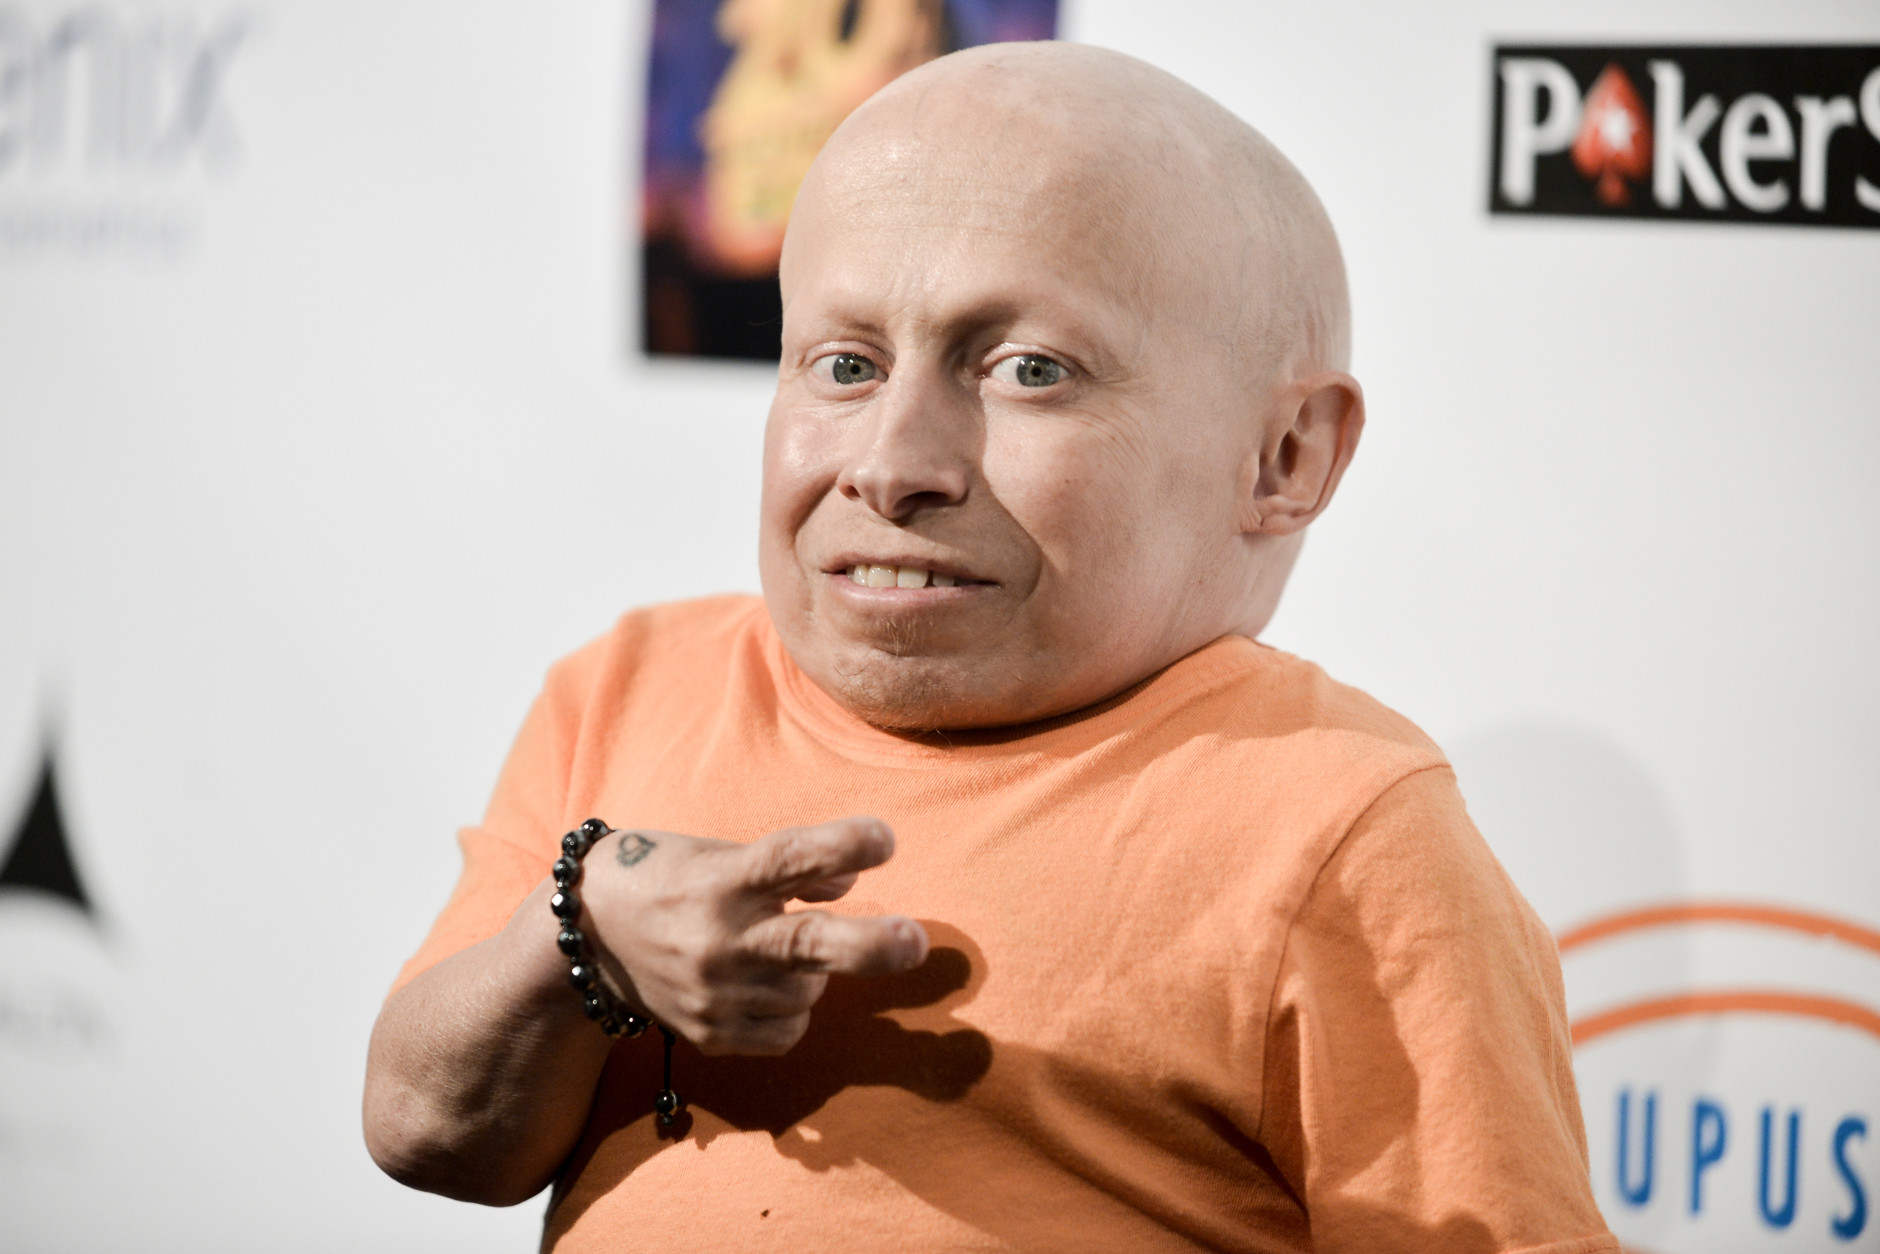 Verne Troyer arrives at the 6th Annual Get Lucky For Lupus Poker Tournament on Thursday, Sept. 18, 2014, in Los Angeles. (Photo by Richard Shotwell/Invision/AP)